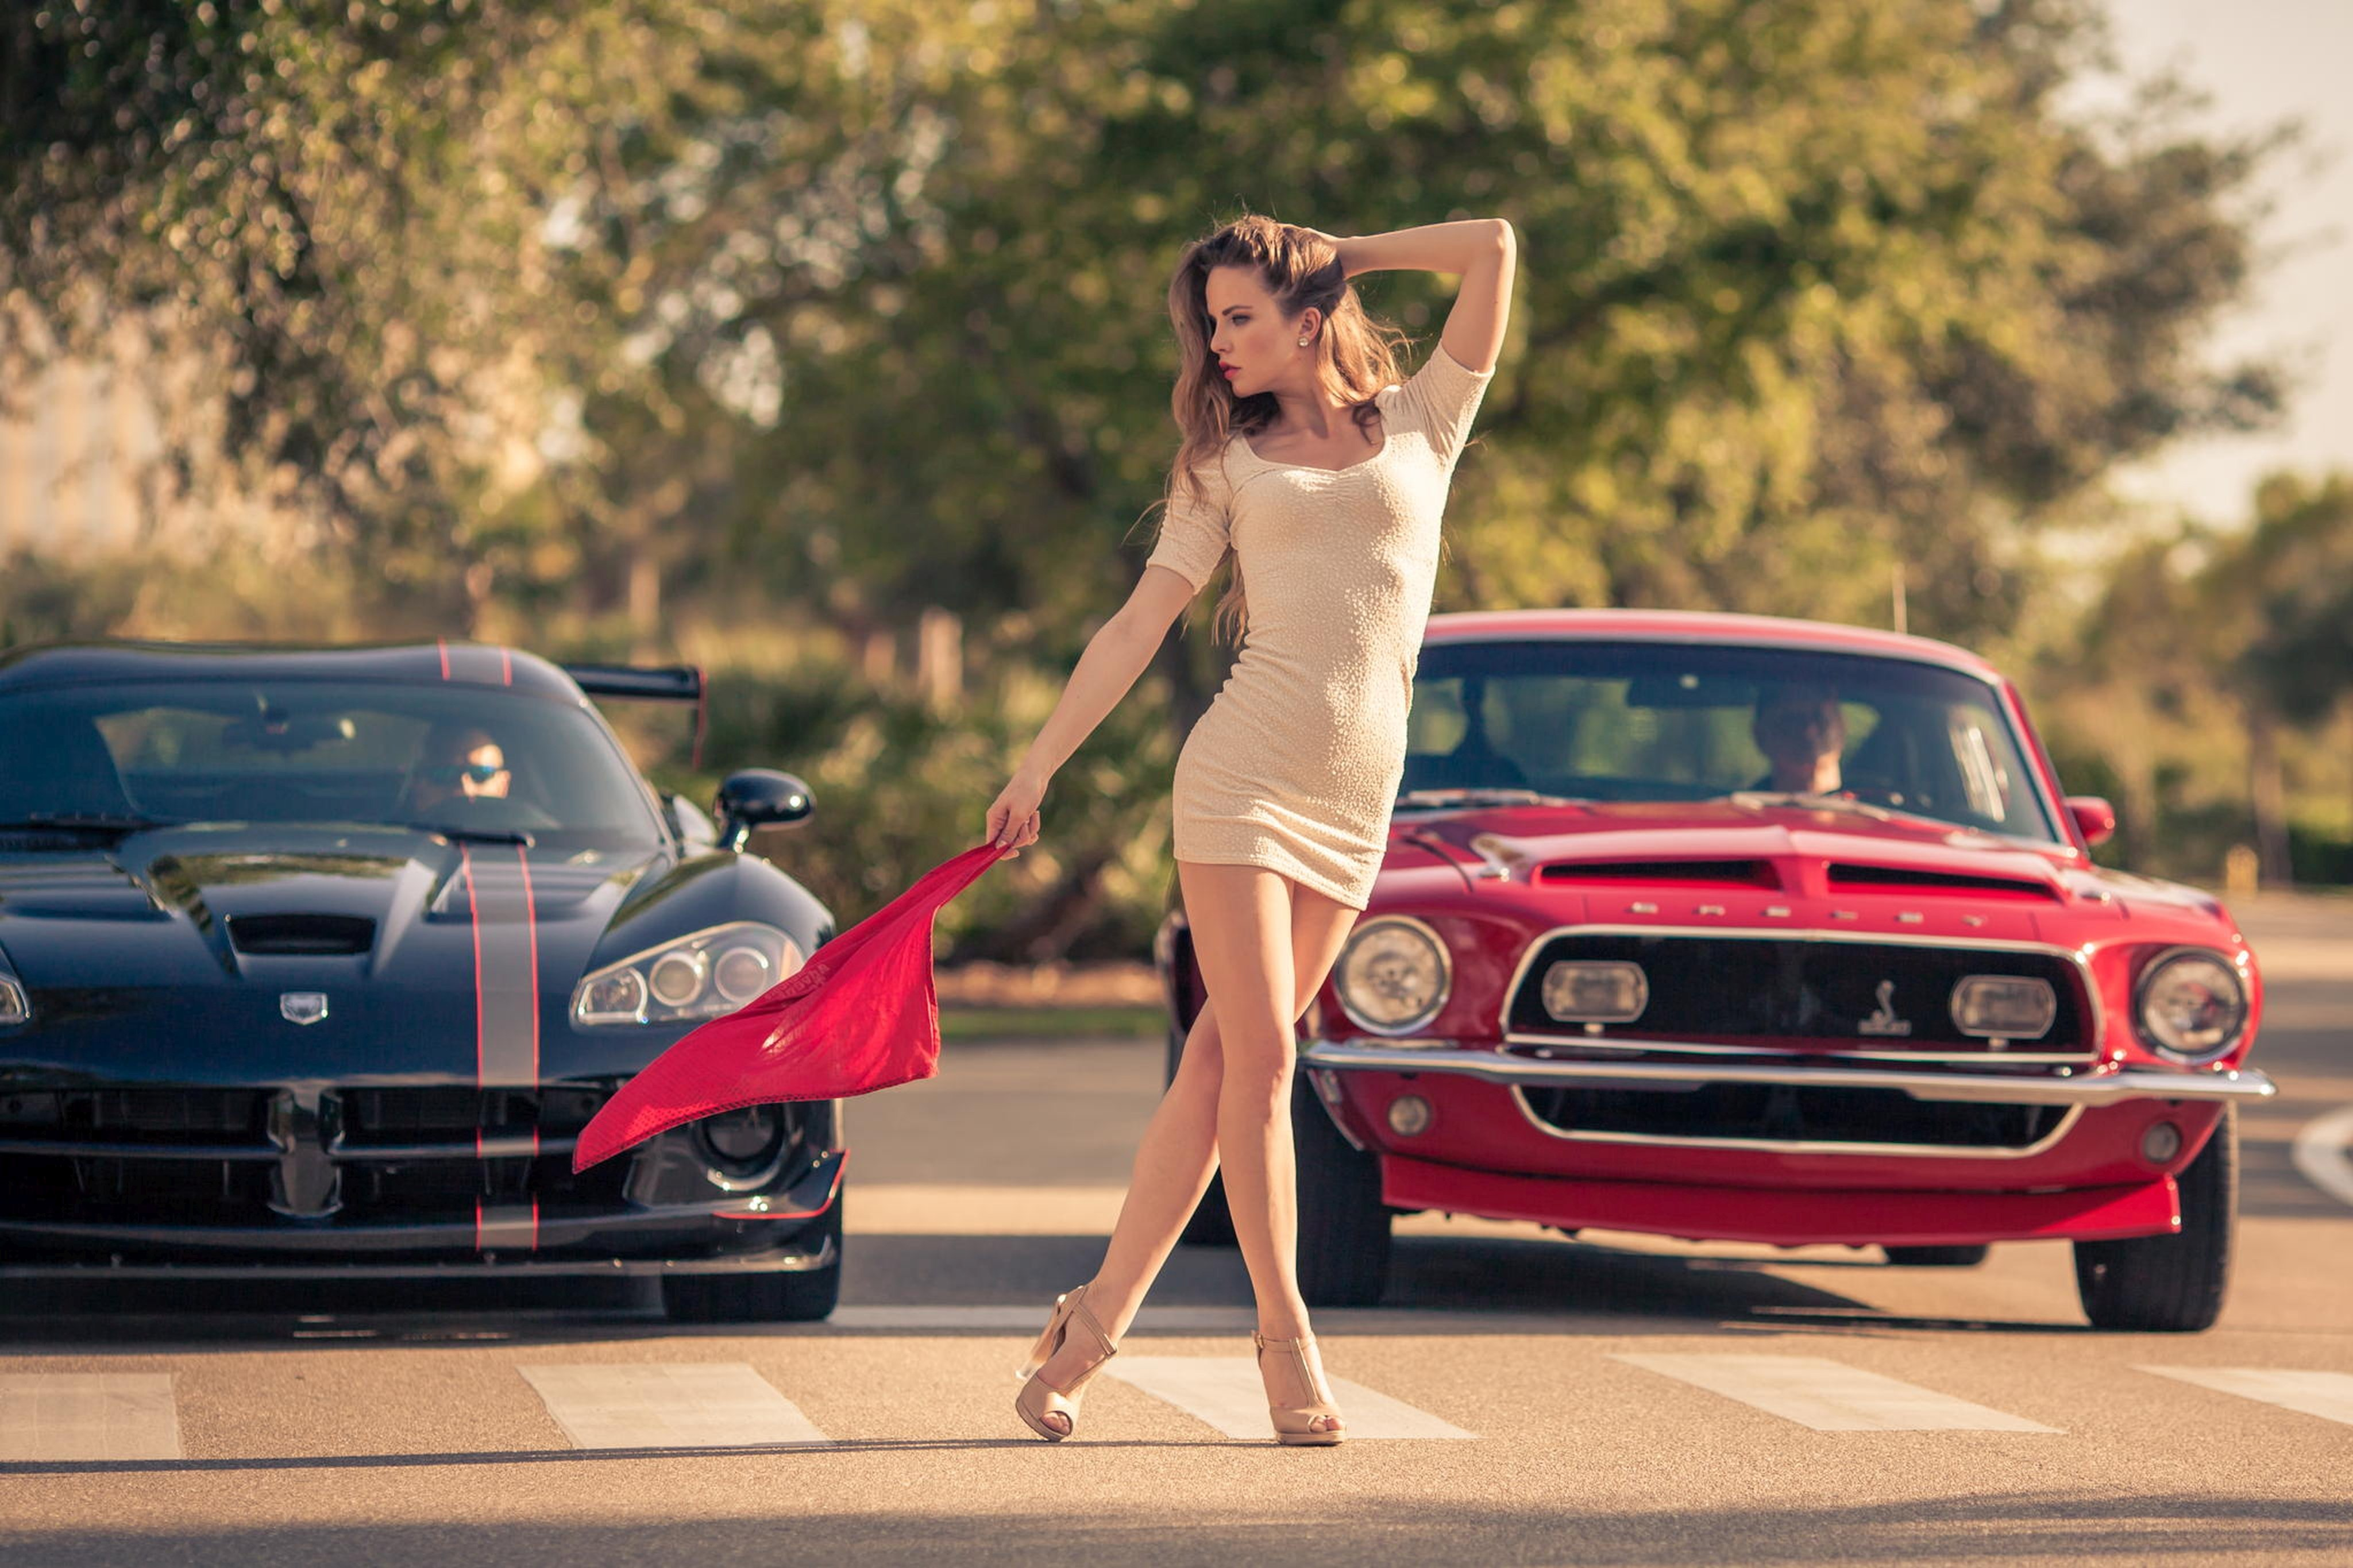 Consider, Free sexy women with cars video there